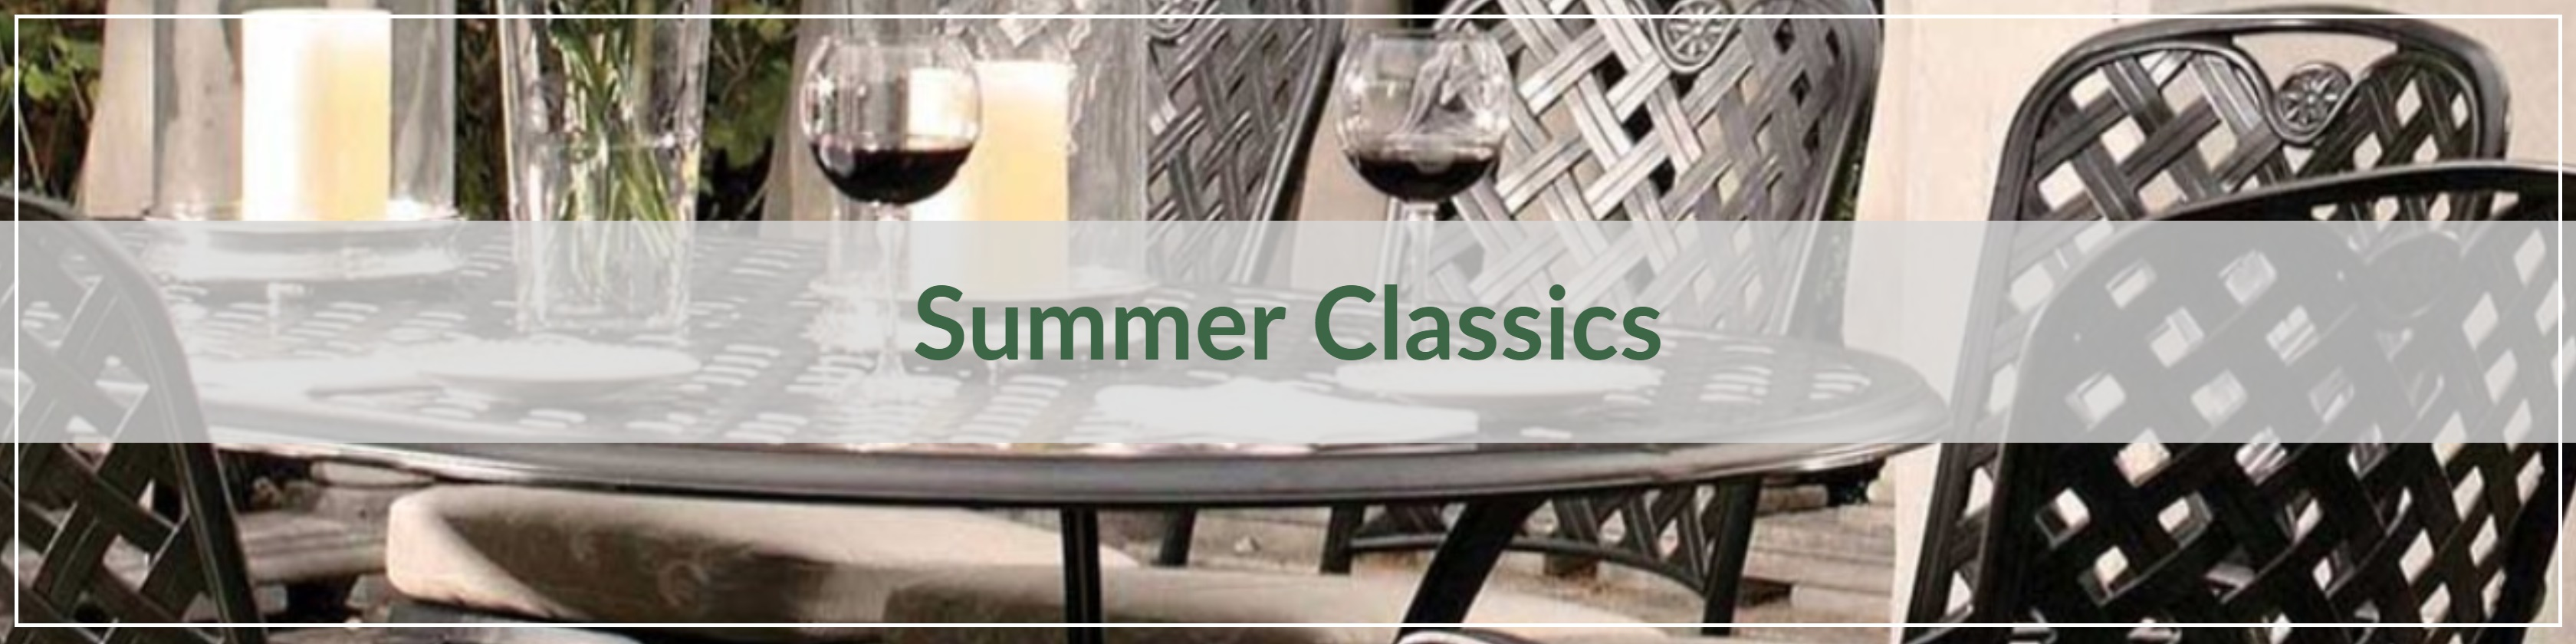 Summer Classics Cast Aluminum Outdoor Dining